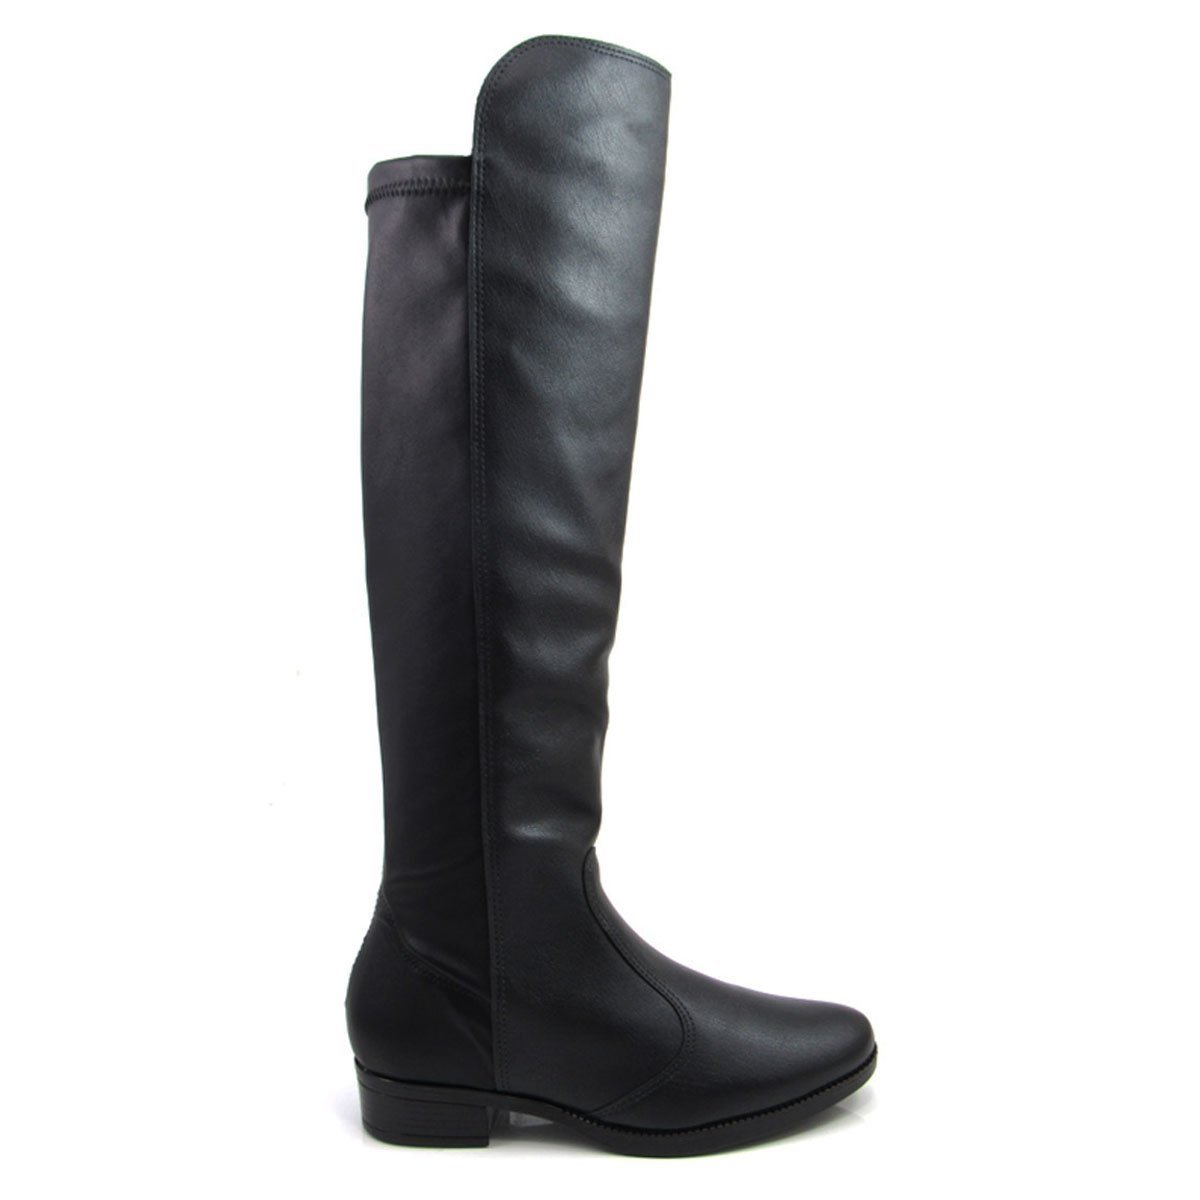 650def243 Bota Feminina Cano Longo Salto Montaria Vizzano 3050105 Over The Knee |  Zattini